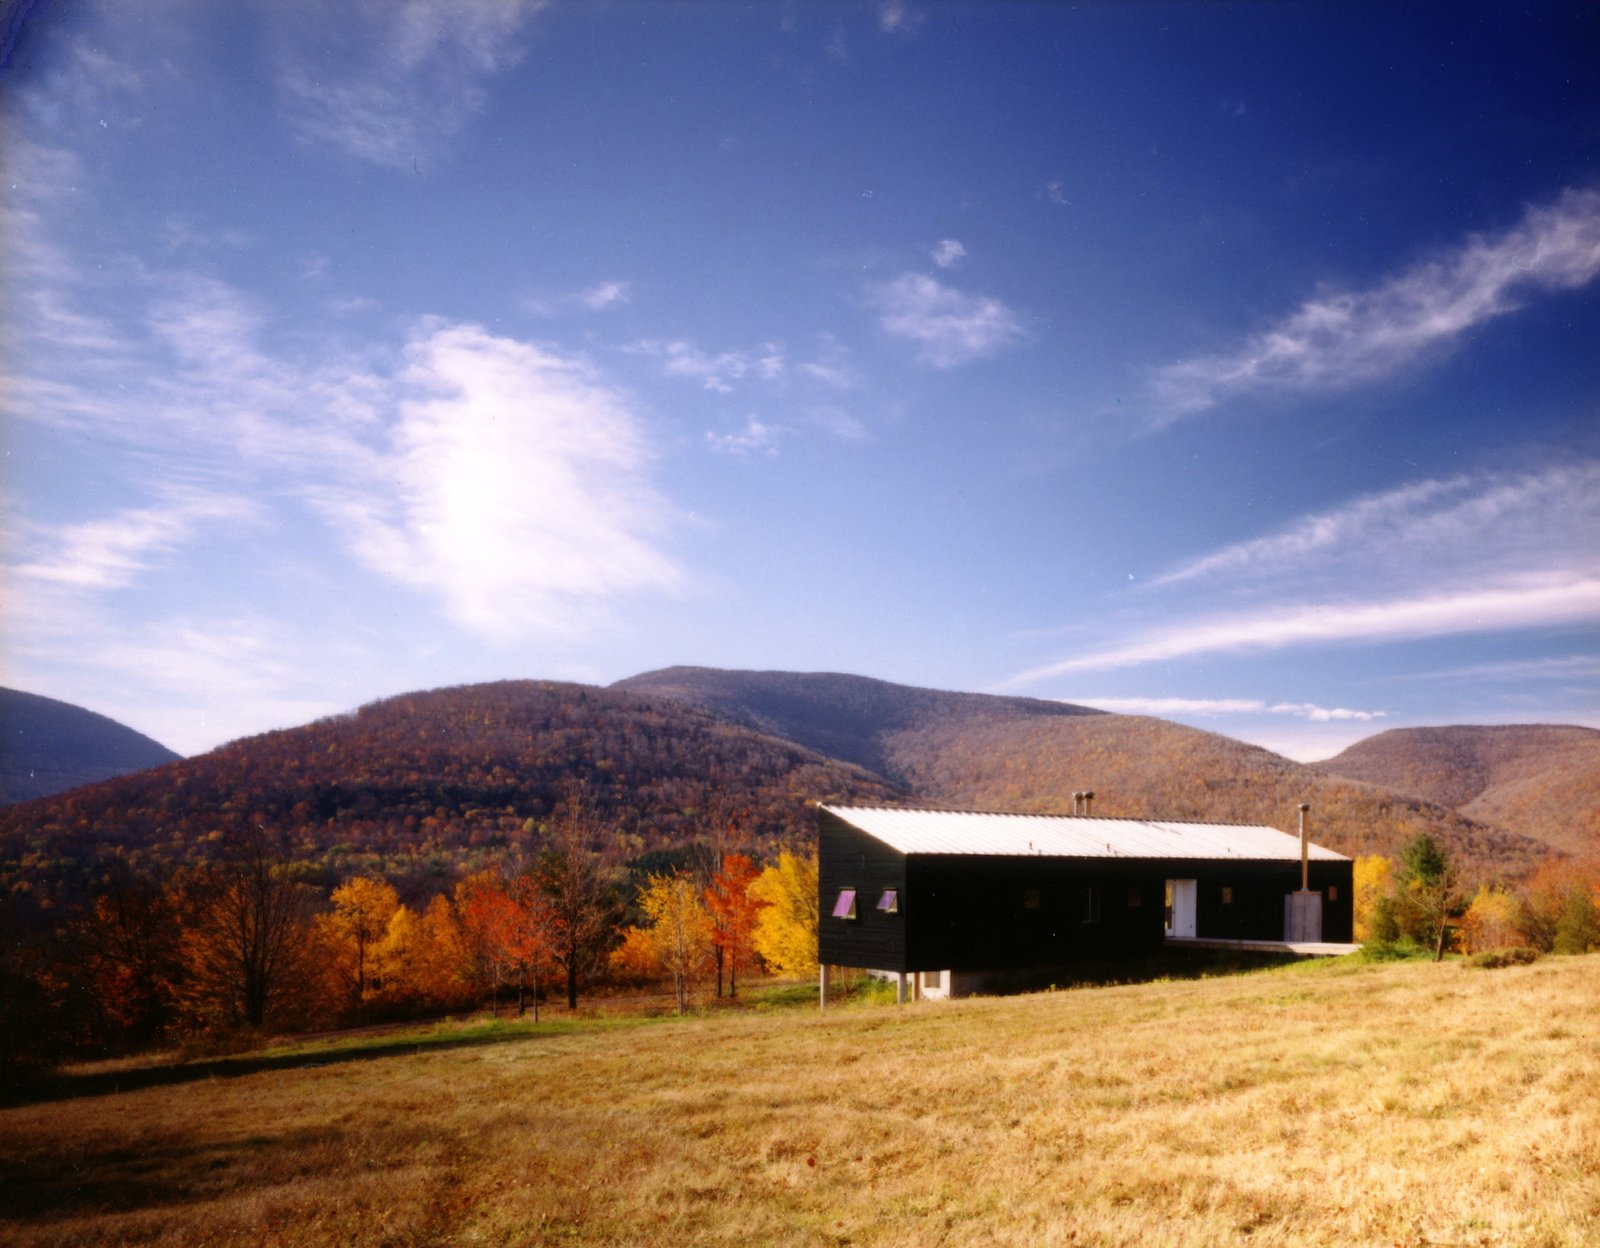 Nickerson-Wakefield House by anderson architects